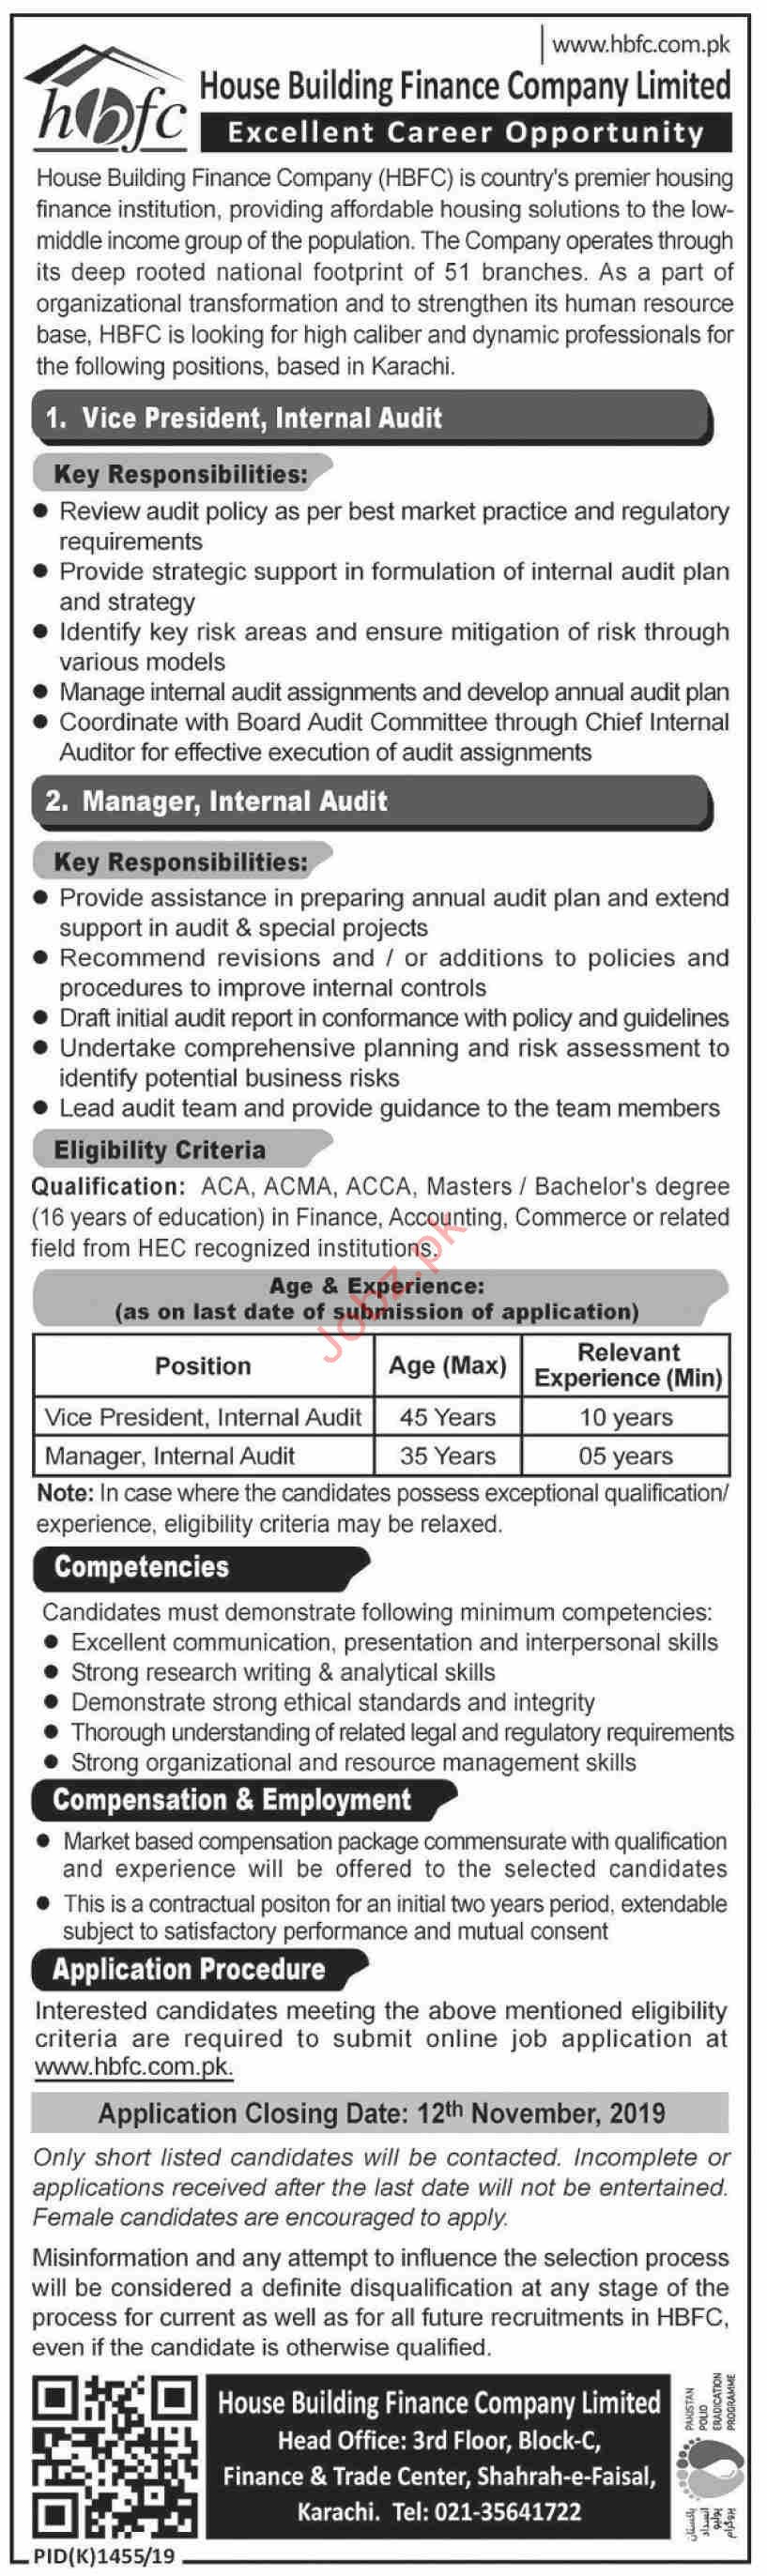 Vice Principal Internal Audit Manager Internal Audit Jobs In House Building Finance Company Limited Hbfcl